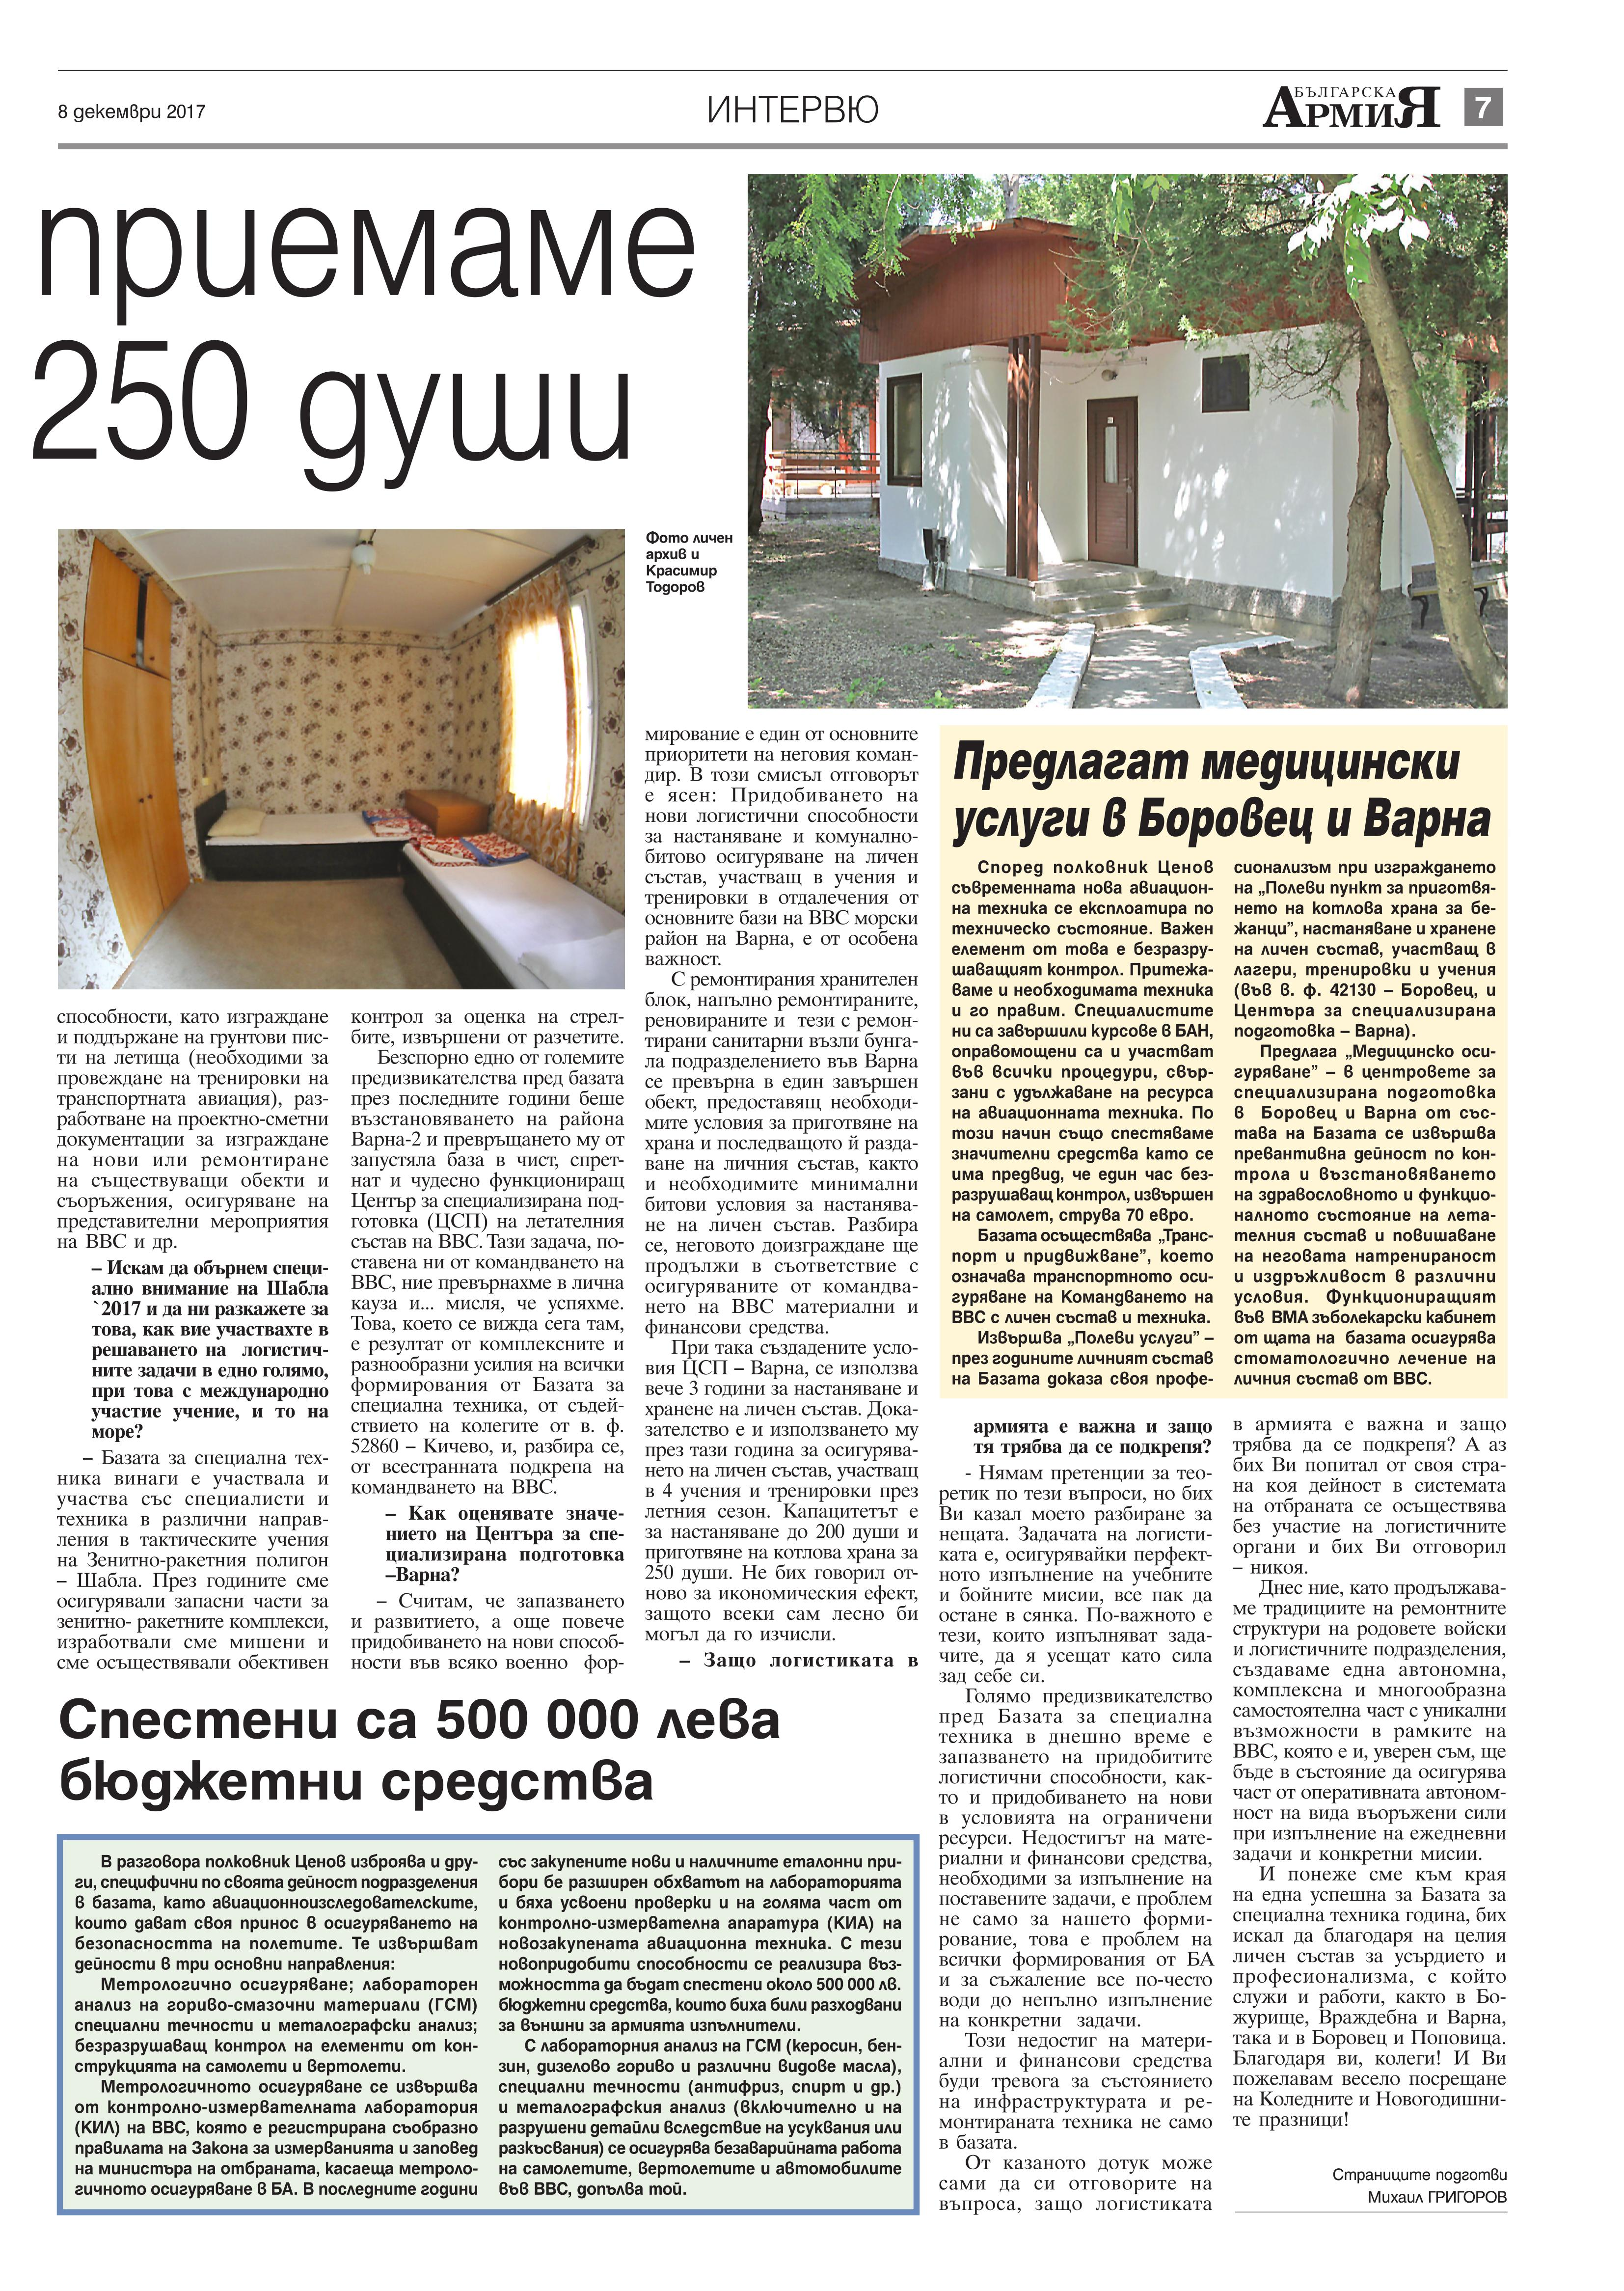 https://armymedia.bg/wp-content/uploads/2015/06/07.page1_-33.jpg